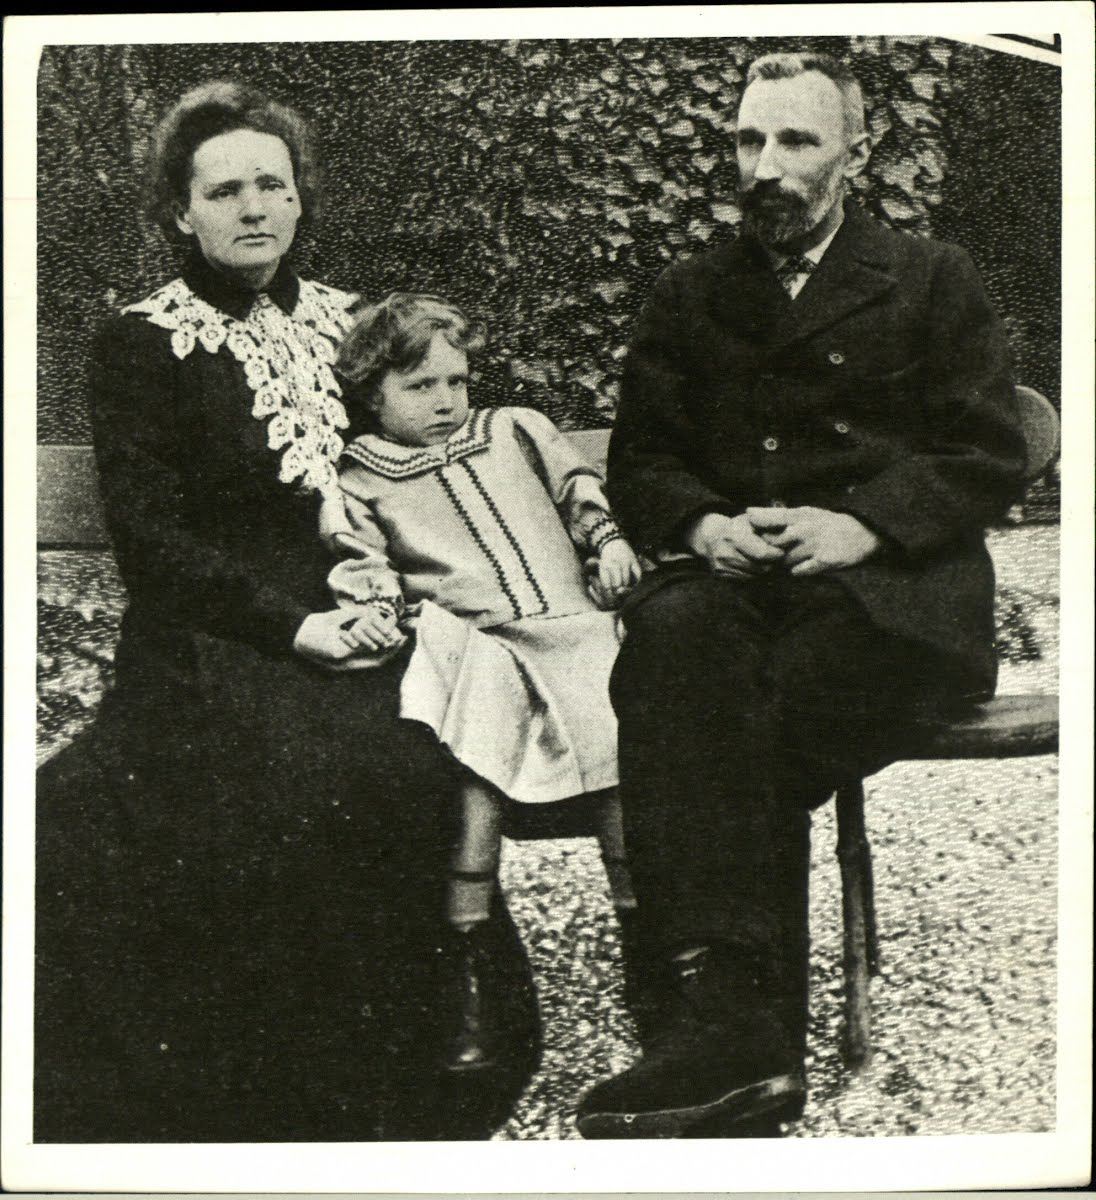 Marie, Irène and Pierre Curie in 1904